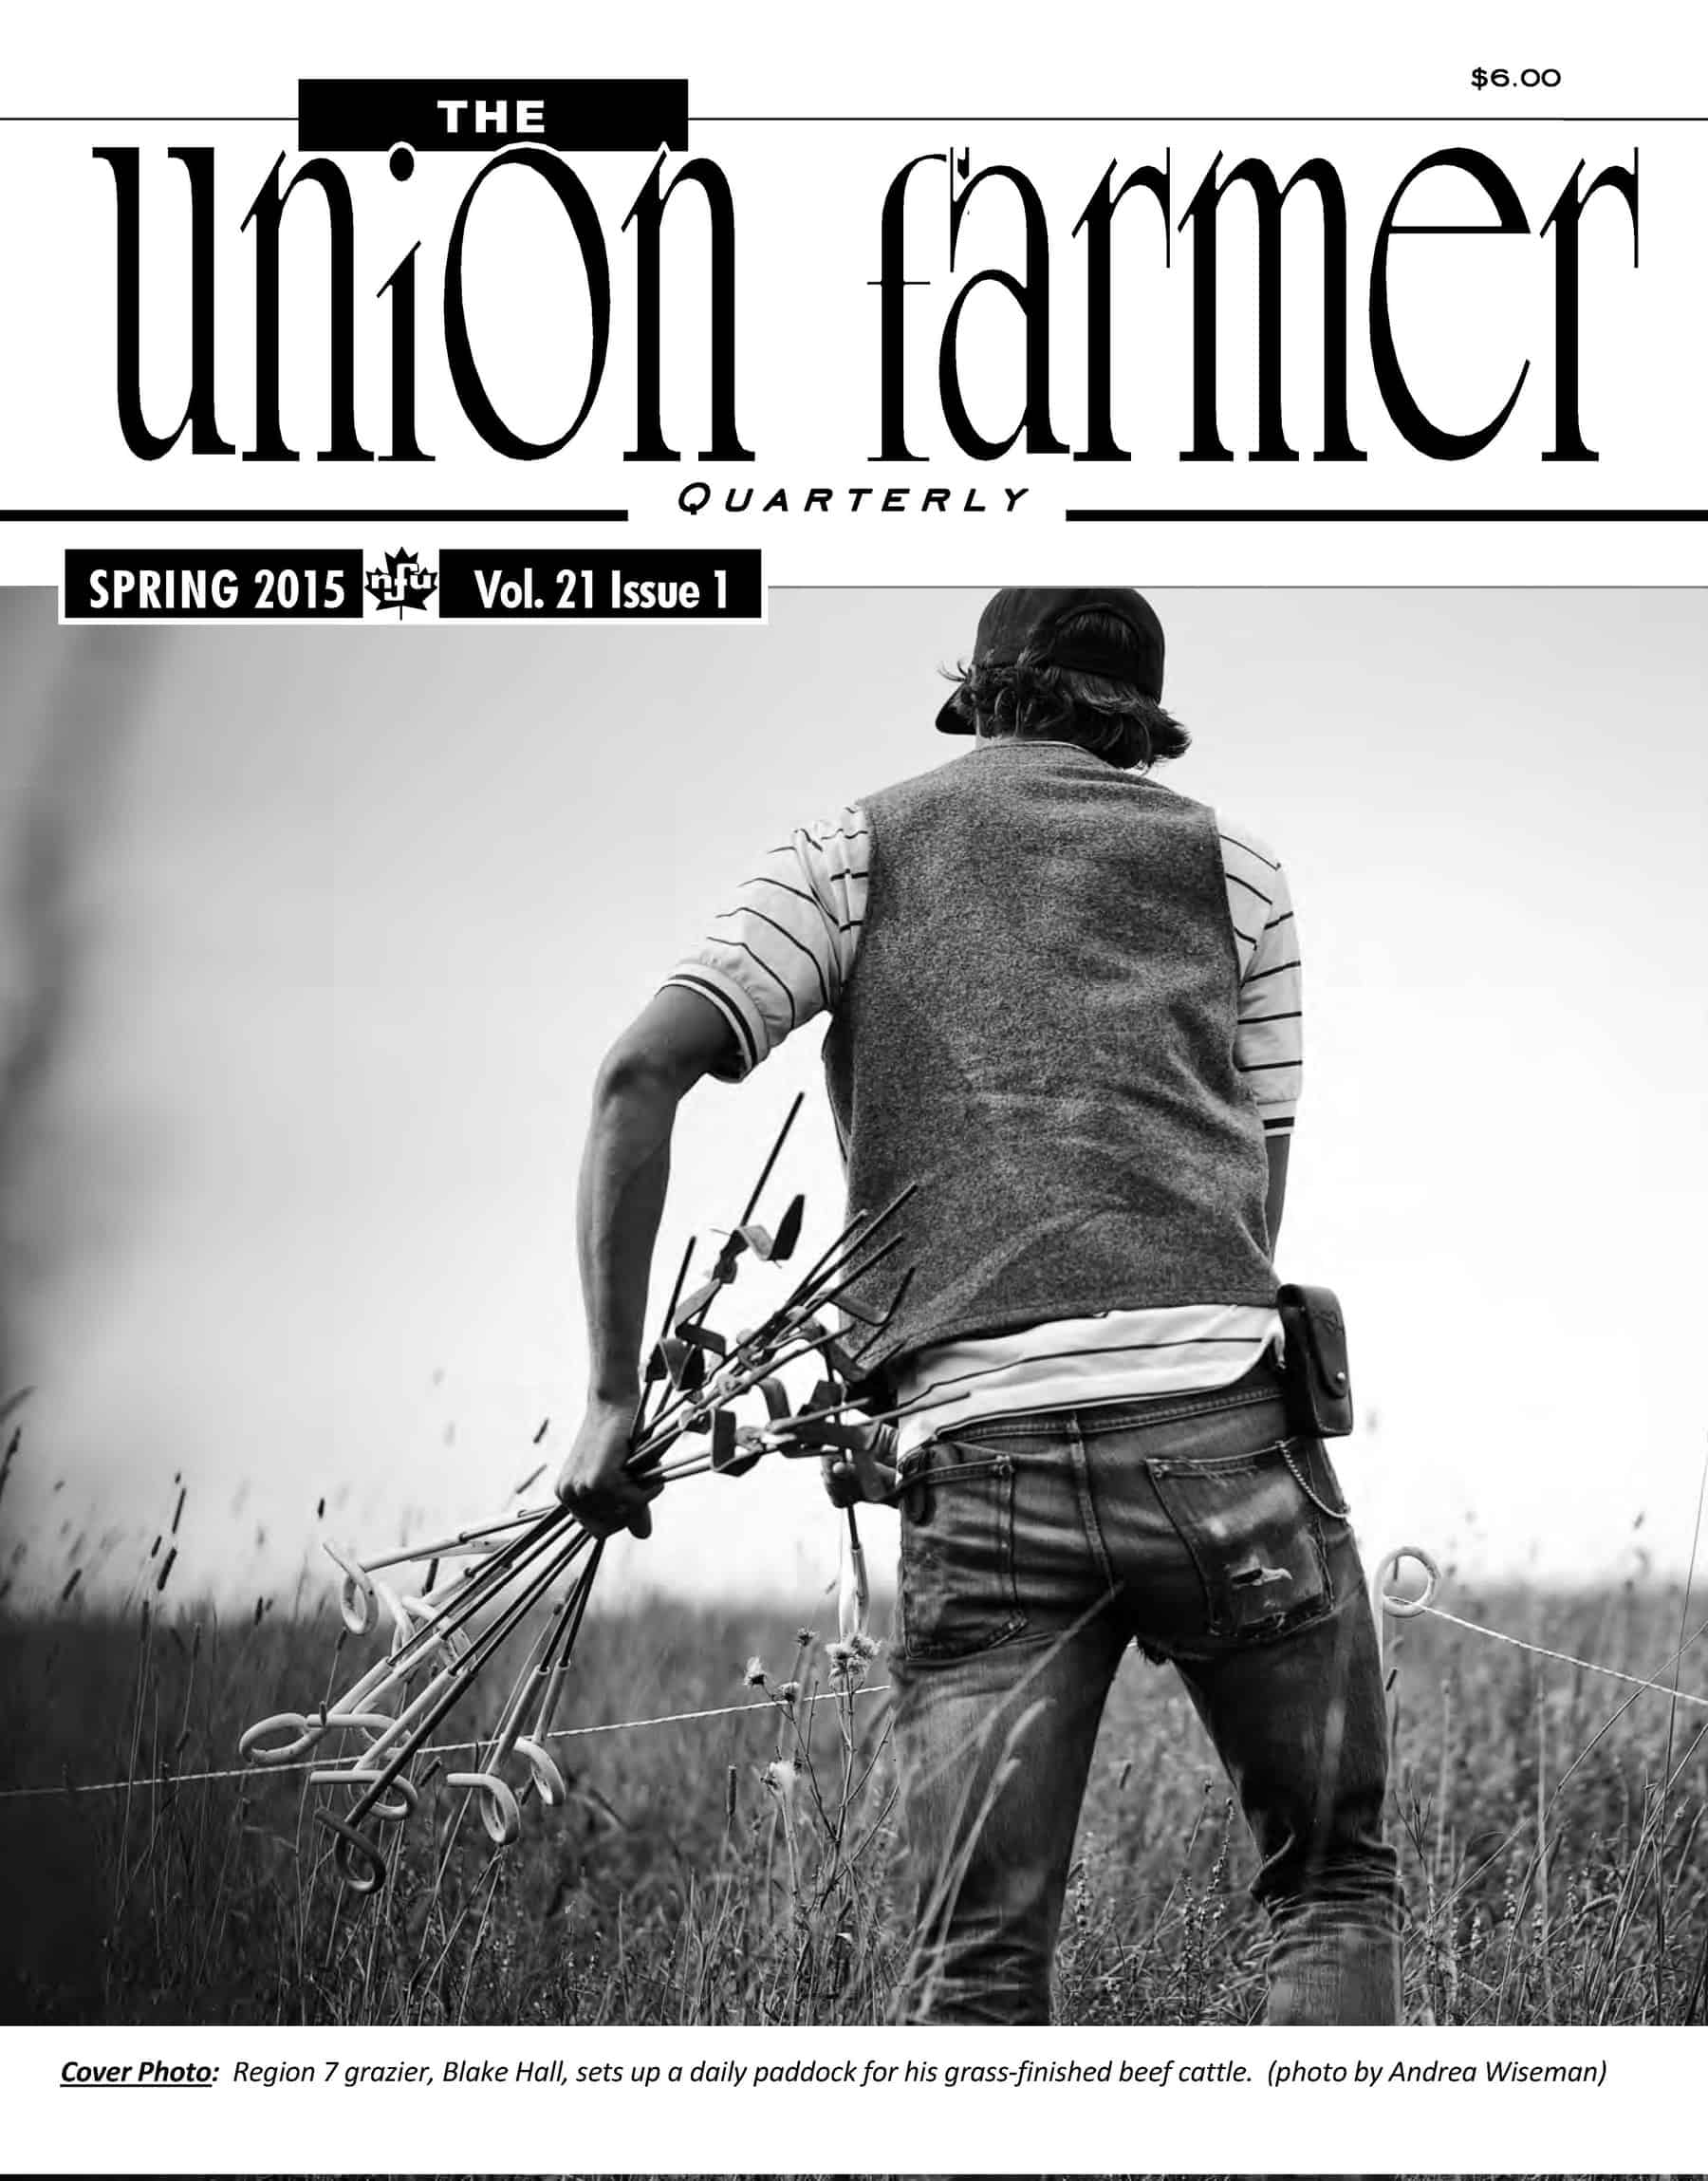 Union Farmer Quarterly: Spring 2015